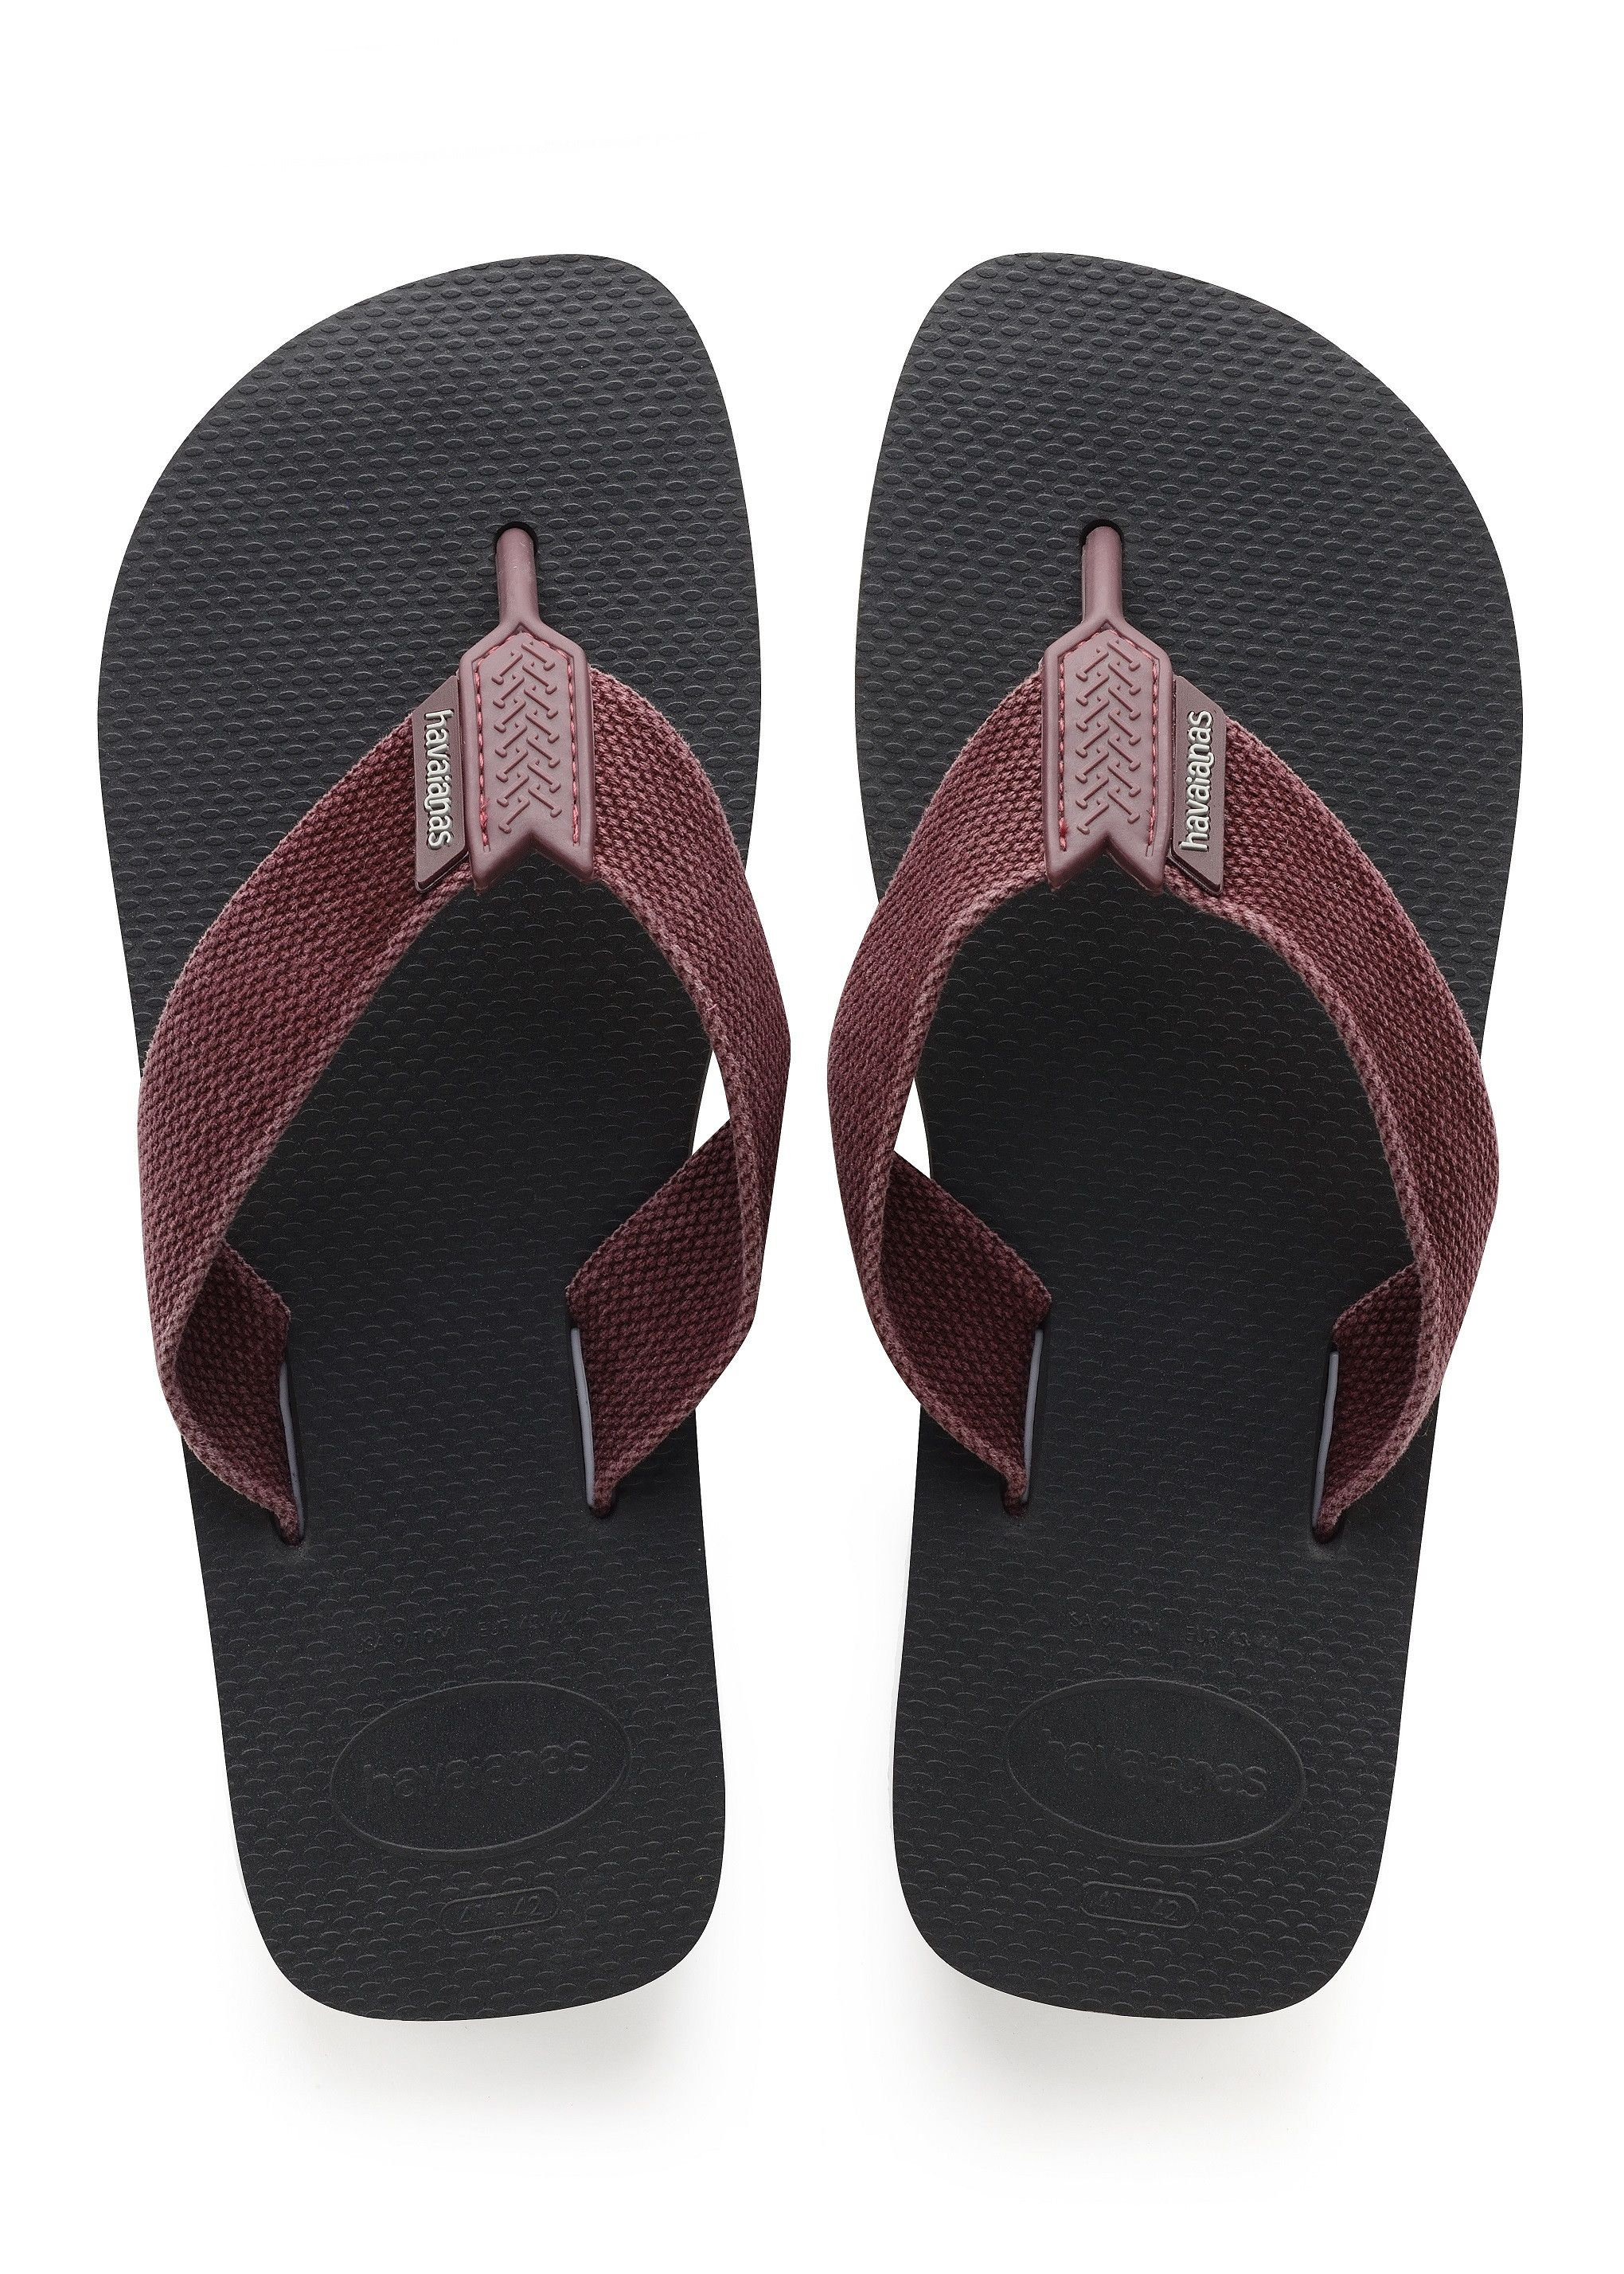 b7effa455 Havaianas Urban Basic Sandal Grey Wine Price From  £26.81 Wine Prices